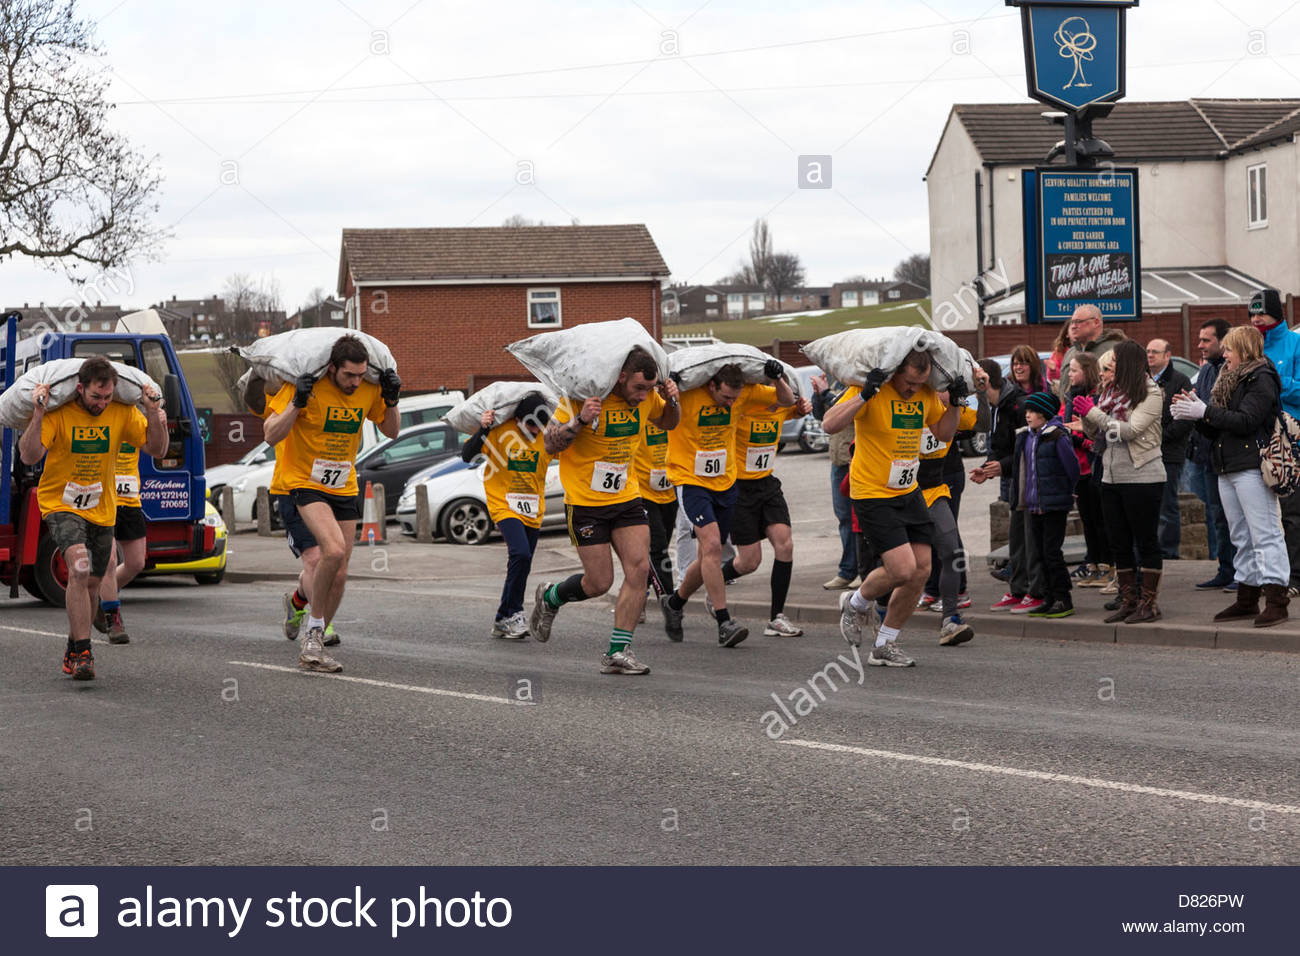 The World Coal Carrying Championships. Race start of one of the mens races . Gawthorpe West Yorkshire England - Stock Image